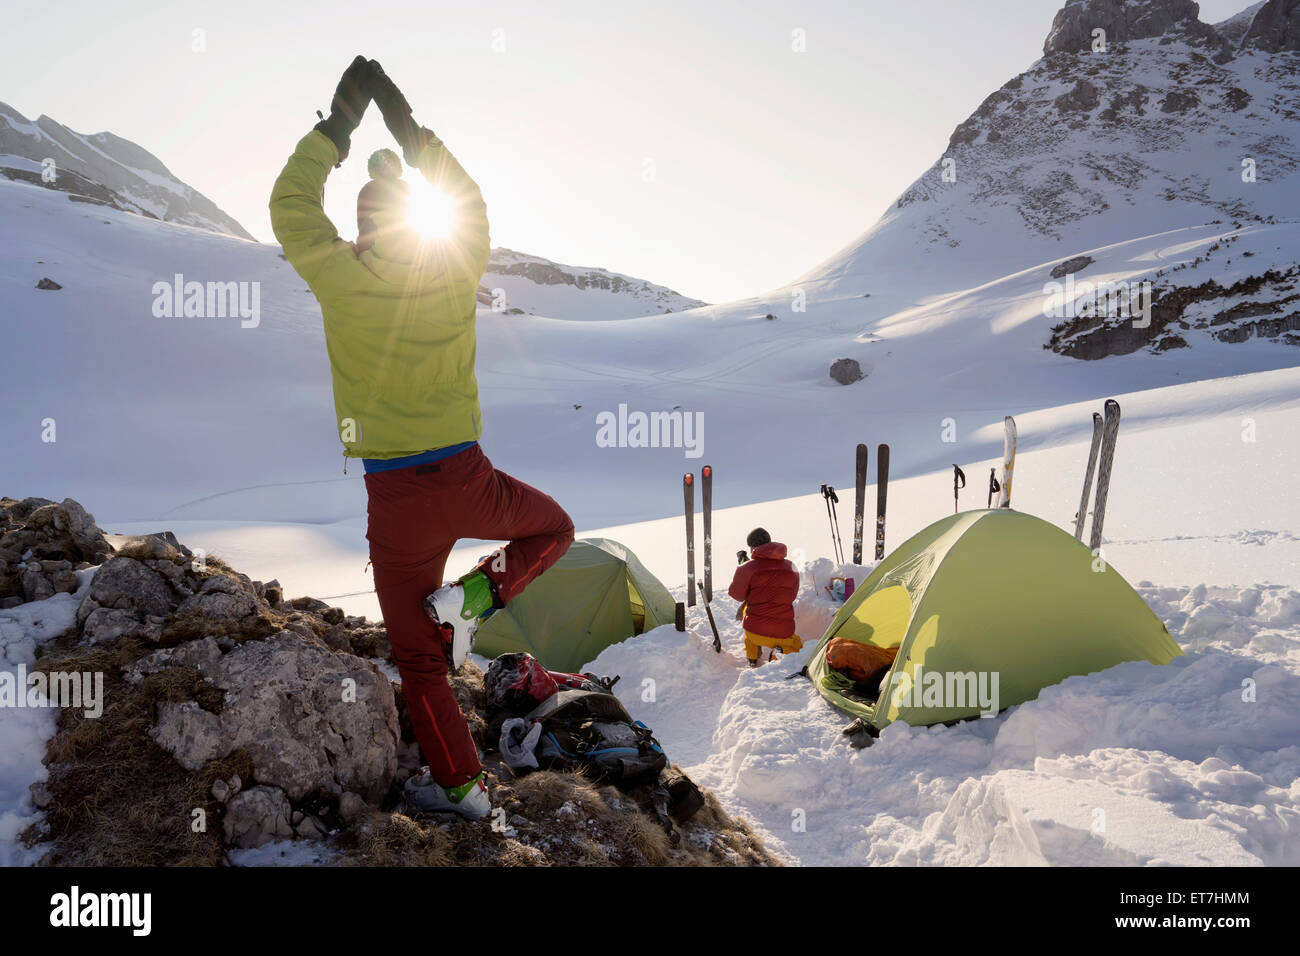 Rear view of man doing yoga at sunrise while camping on mountain, Tyrol, Austria - Stock Image